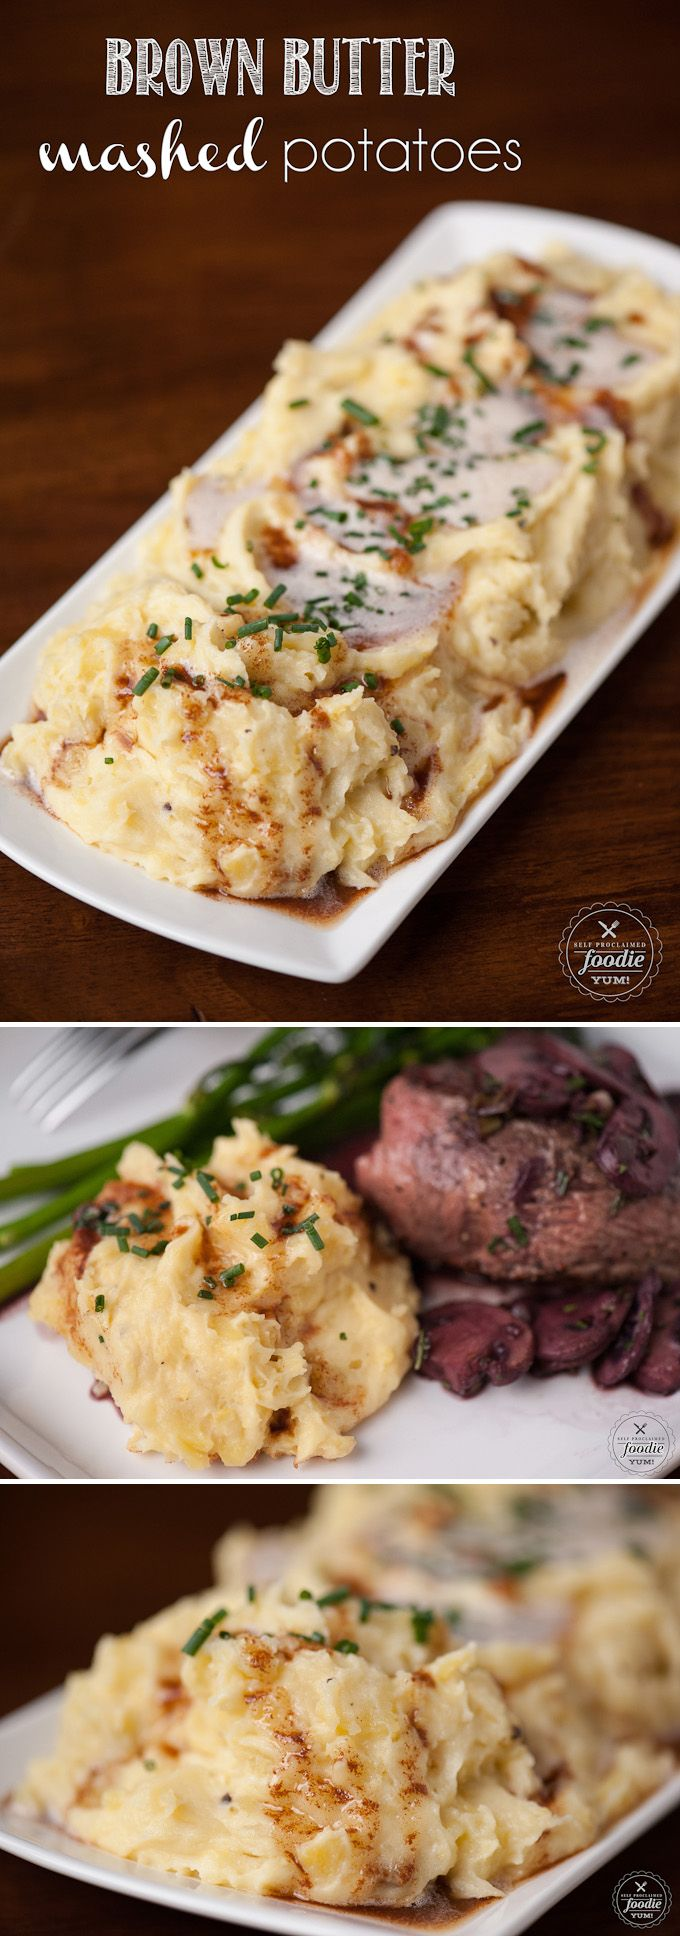 Brown Butter Mashed Potatoes | Recipe | Mashed Potatoes, Potatoes and ...